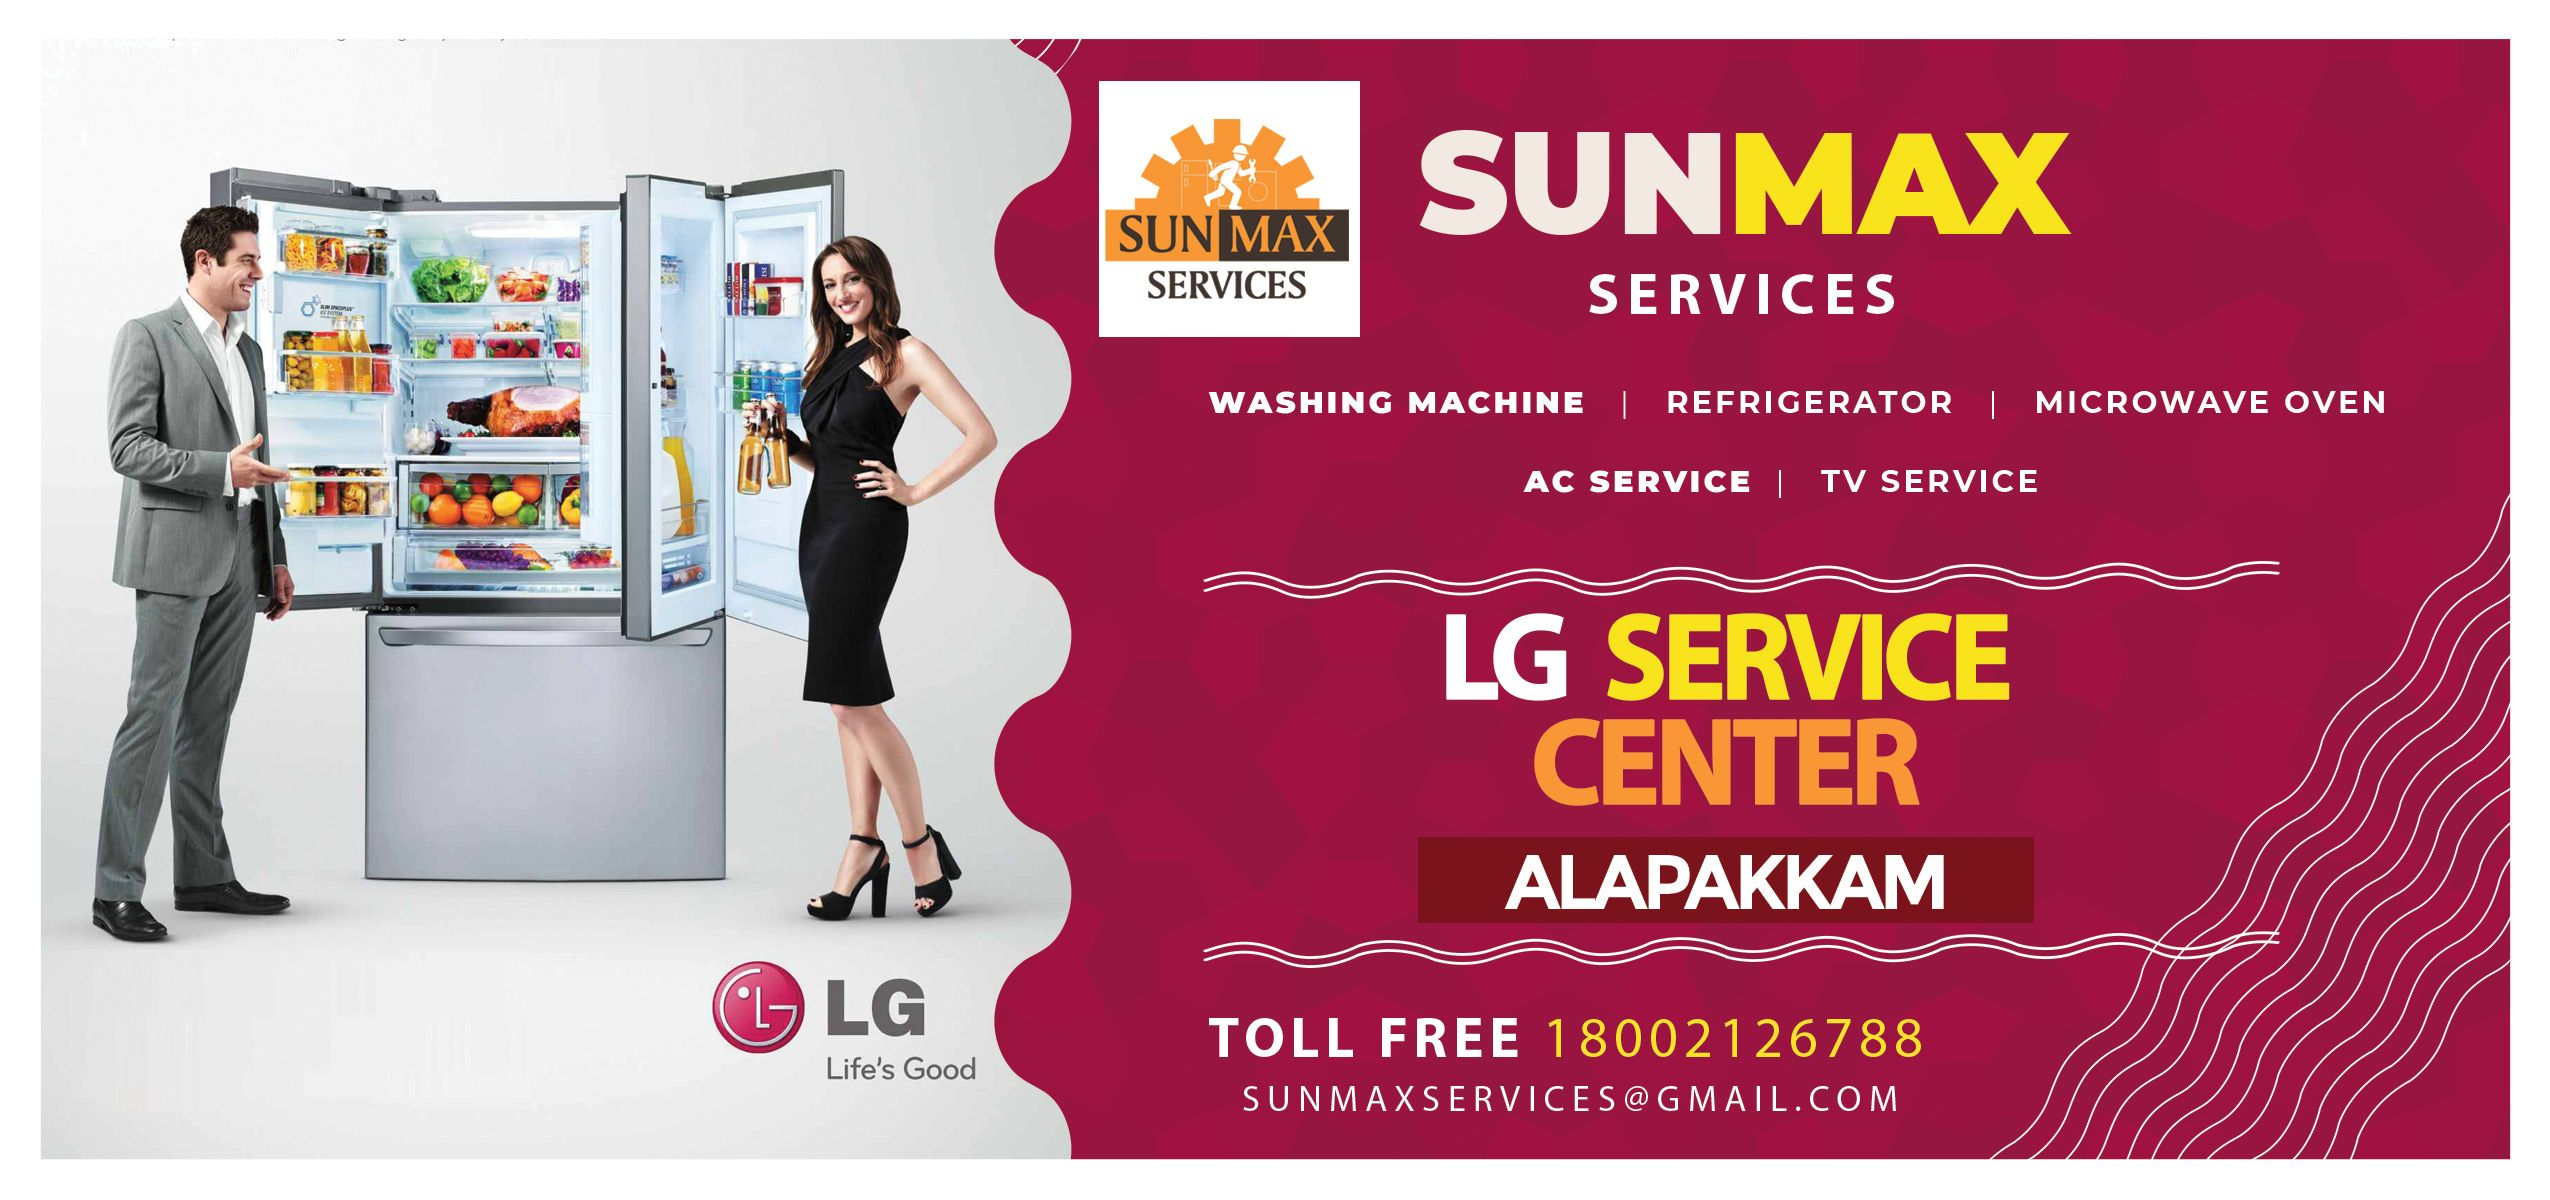 Sunmax Lg Service Center Alapakkam Is Providing All Kinds Of Repair And Service For Samsung Washing Machine Samsung Washing Machine Lcd Television Tv Services